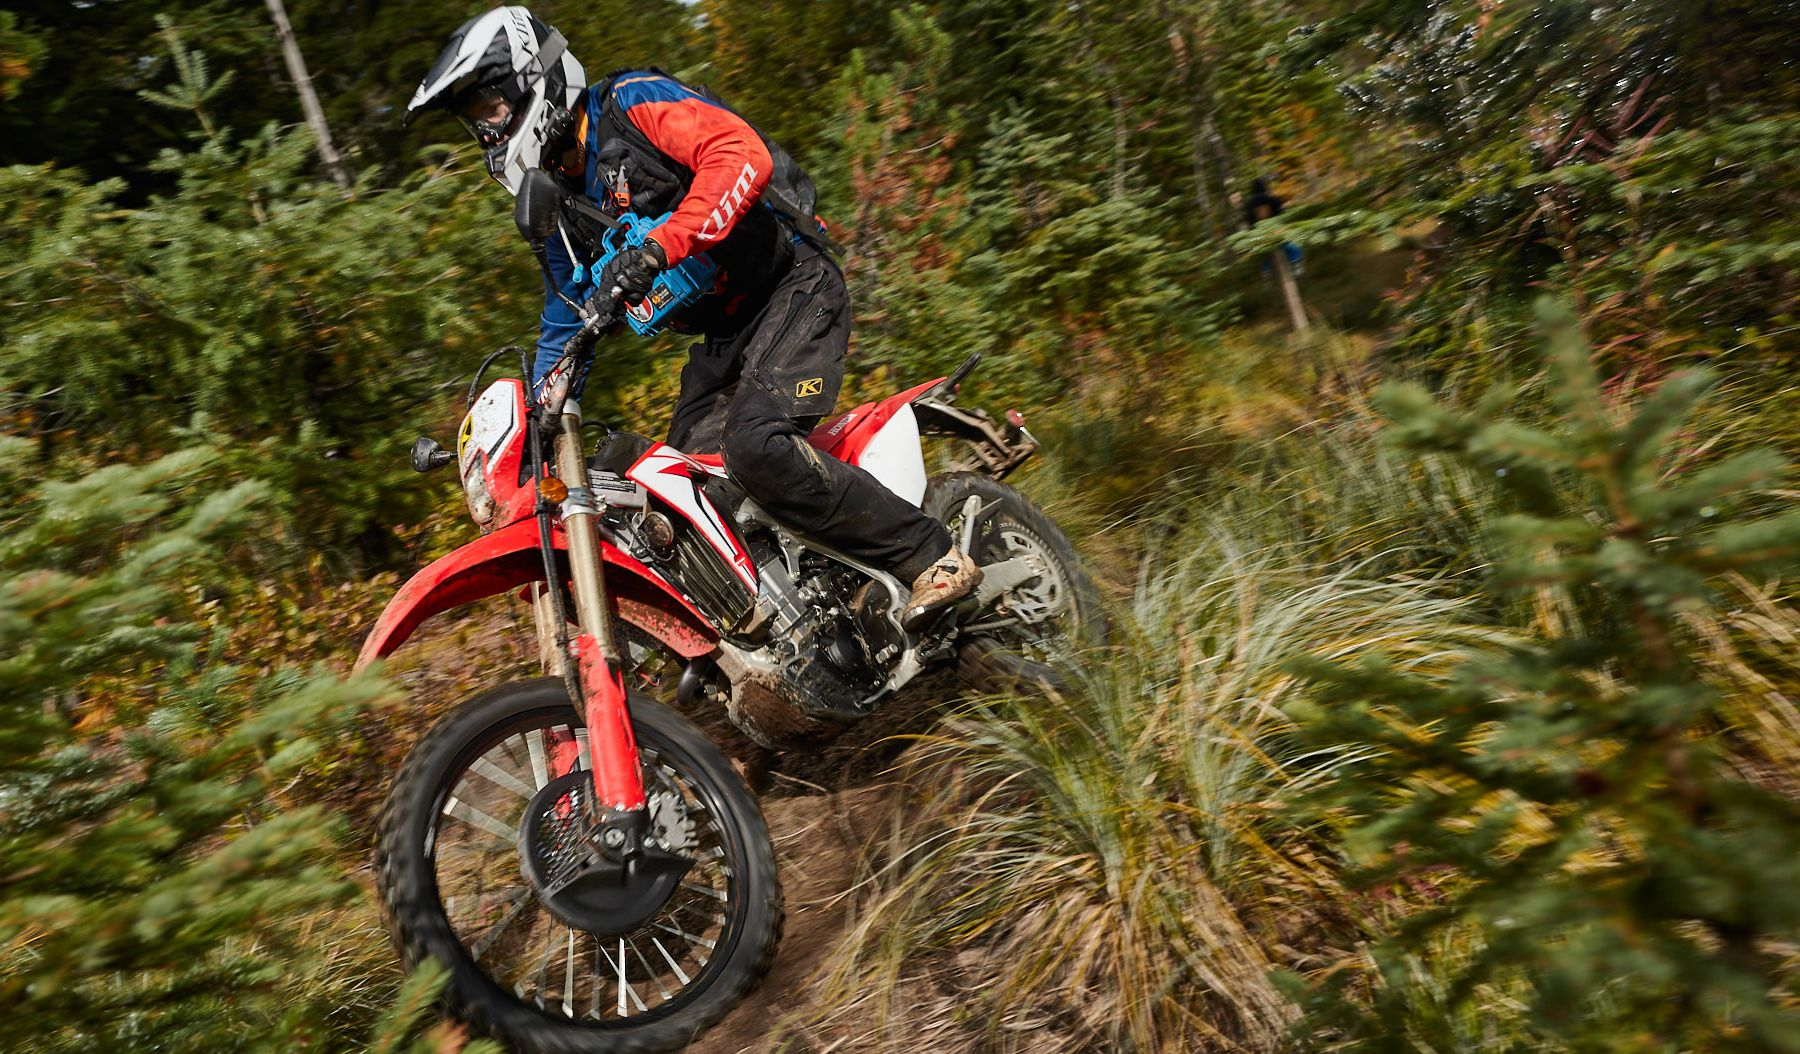 2019 Honda CRF450L First Ride Review